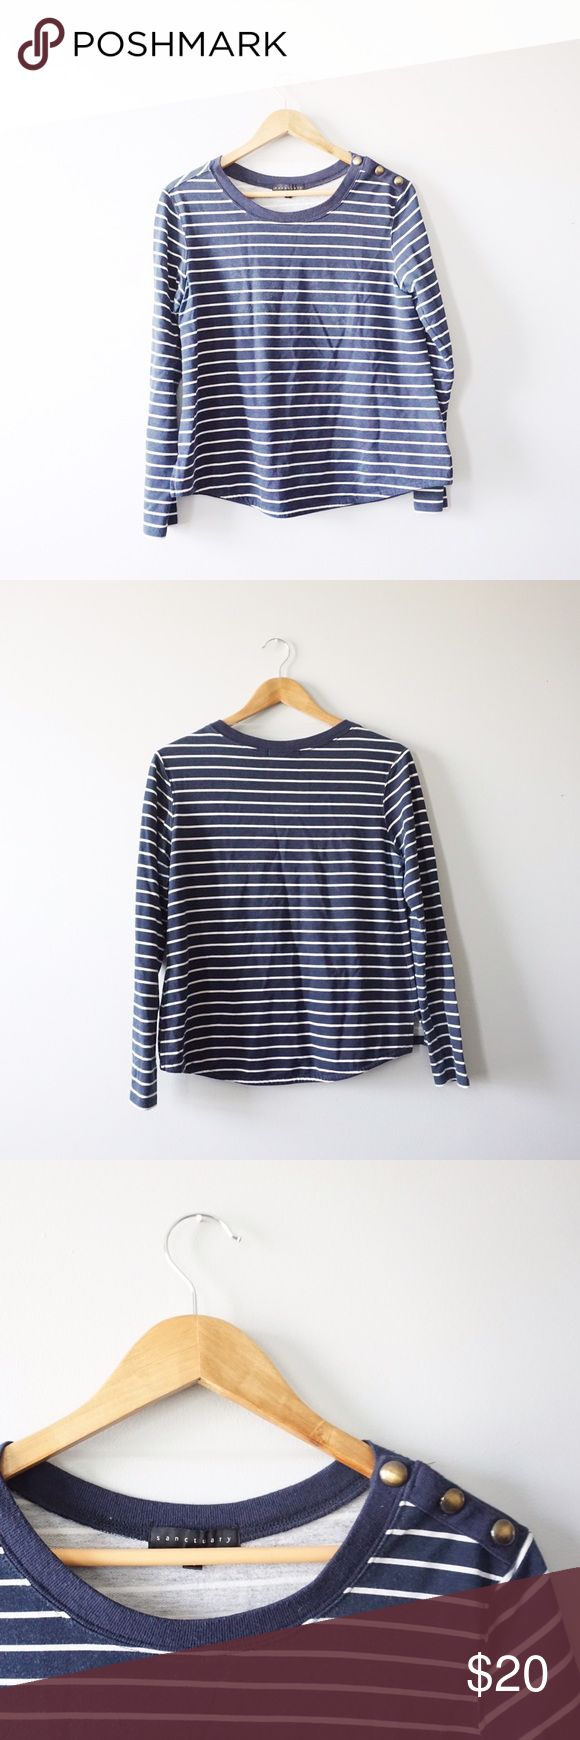 Sanctuary Striped Capitol Top Sanctuary blue and white nautical long sleeve top size medium. Button side detailing. Super soft! Rayon and polyester. 23 inches long, 19 inches bust. The blue is starting to bleed into the white, but looks normal. No stains or holes. Sanctuary Tops Blouses